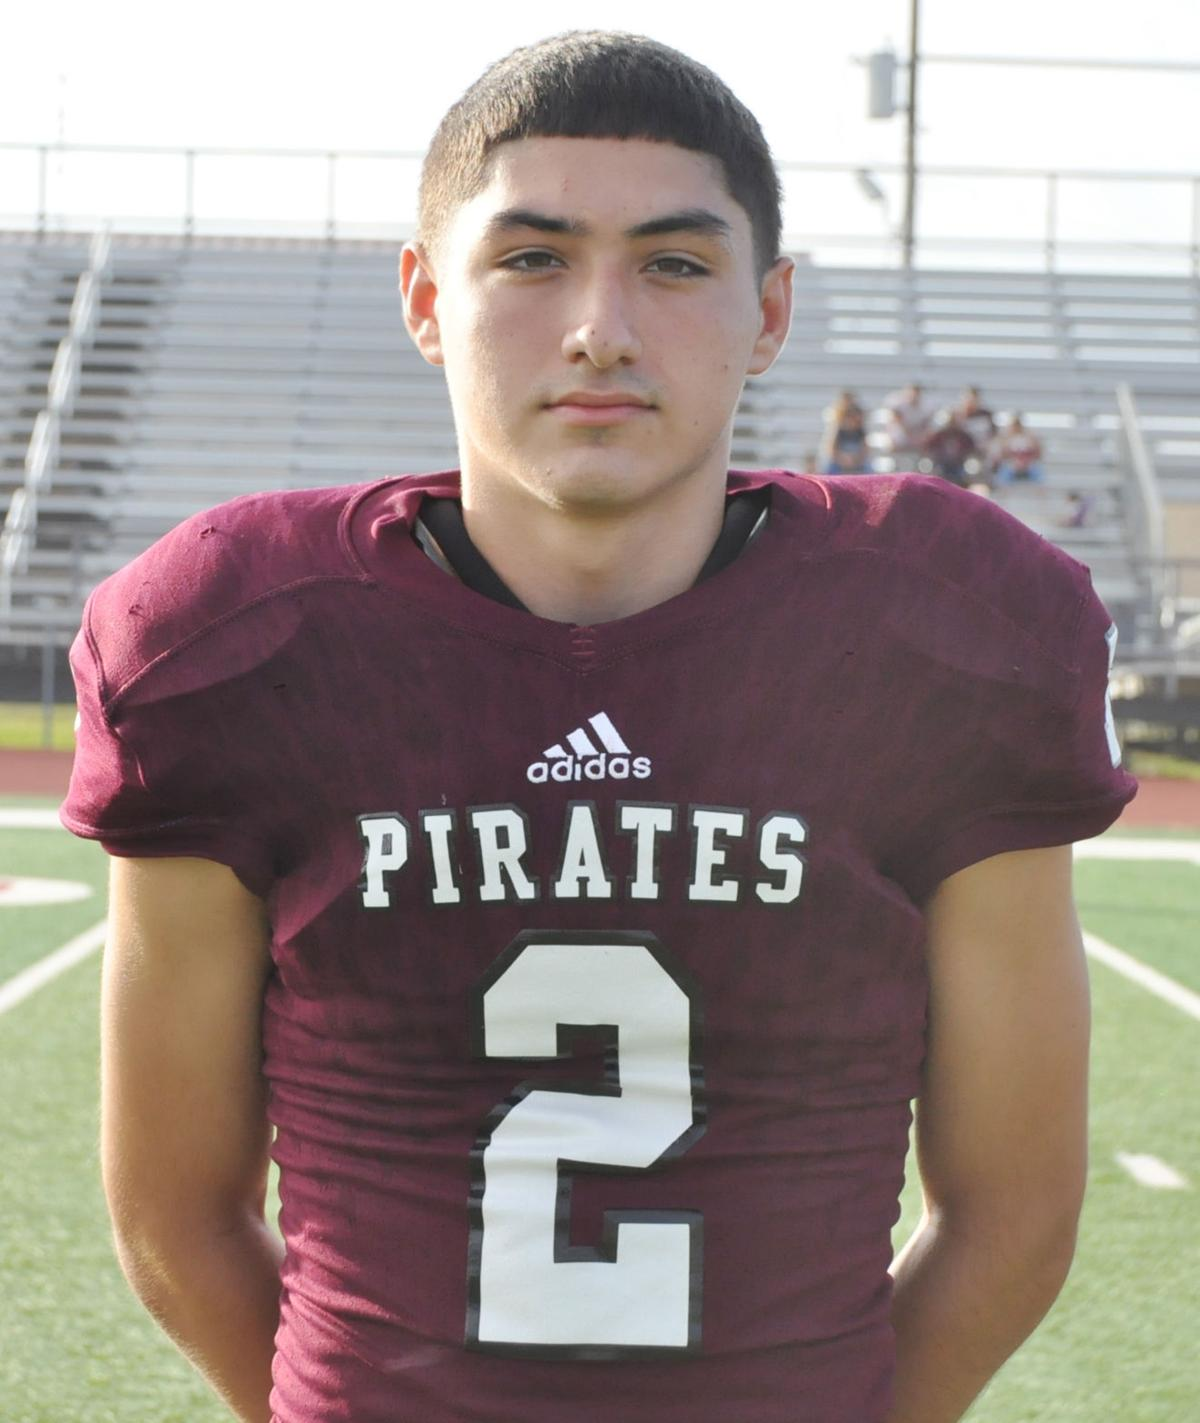 S spt 1-9 Mathis FB All-District pic_1.JPG